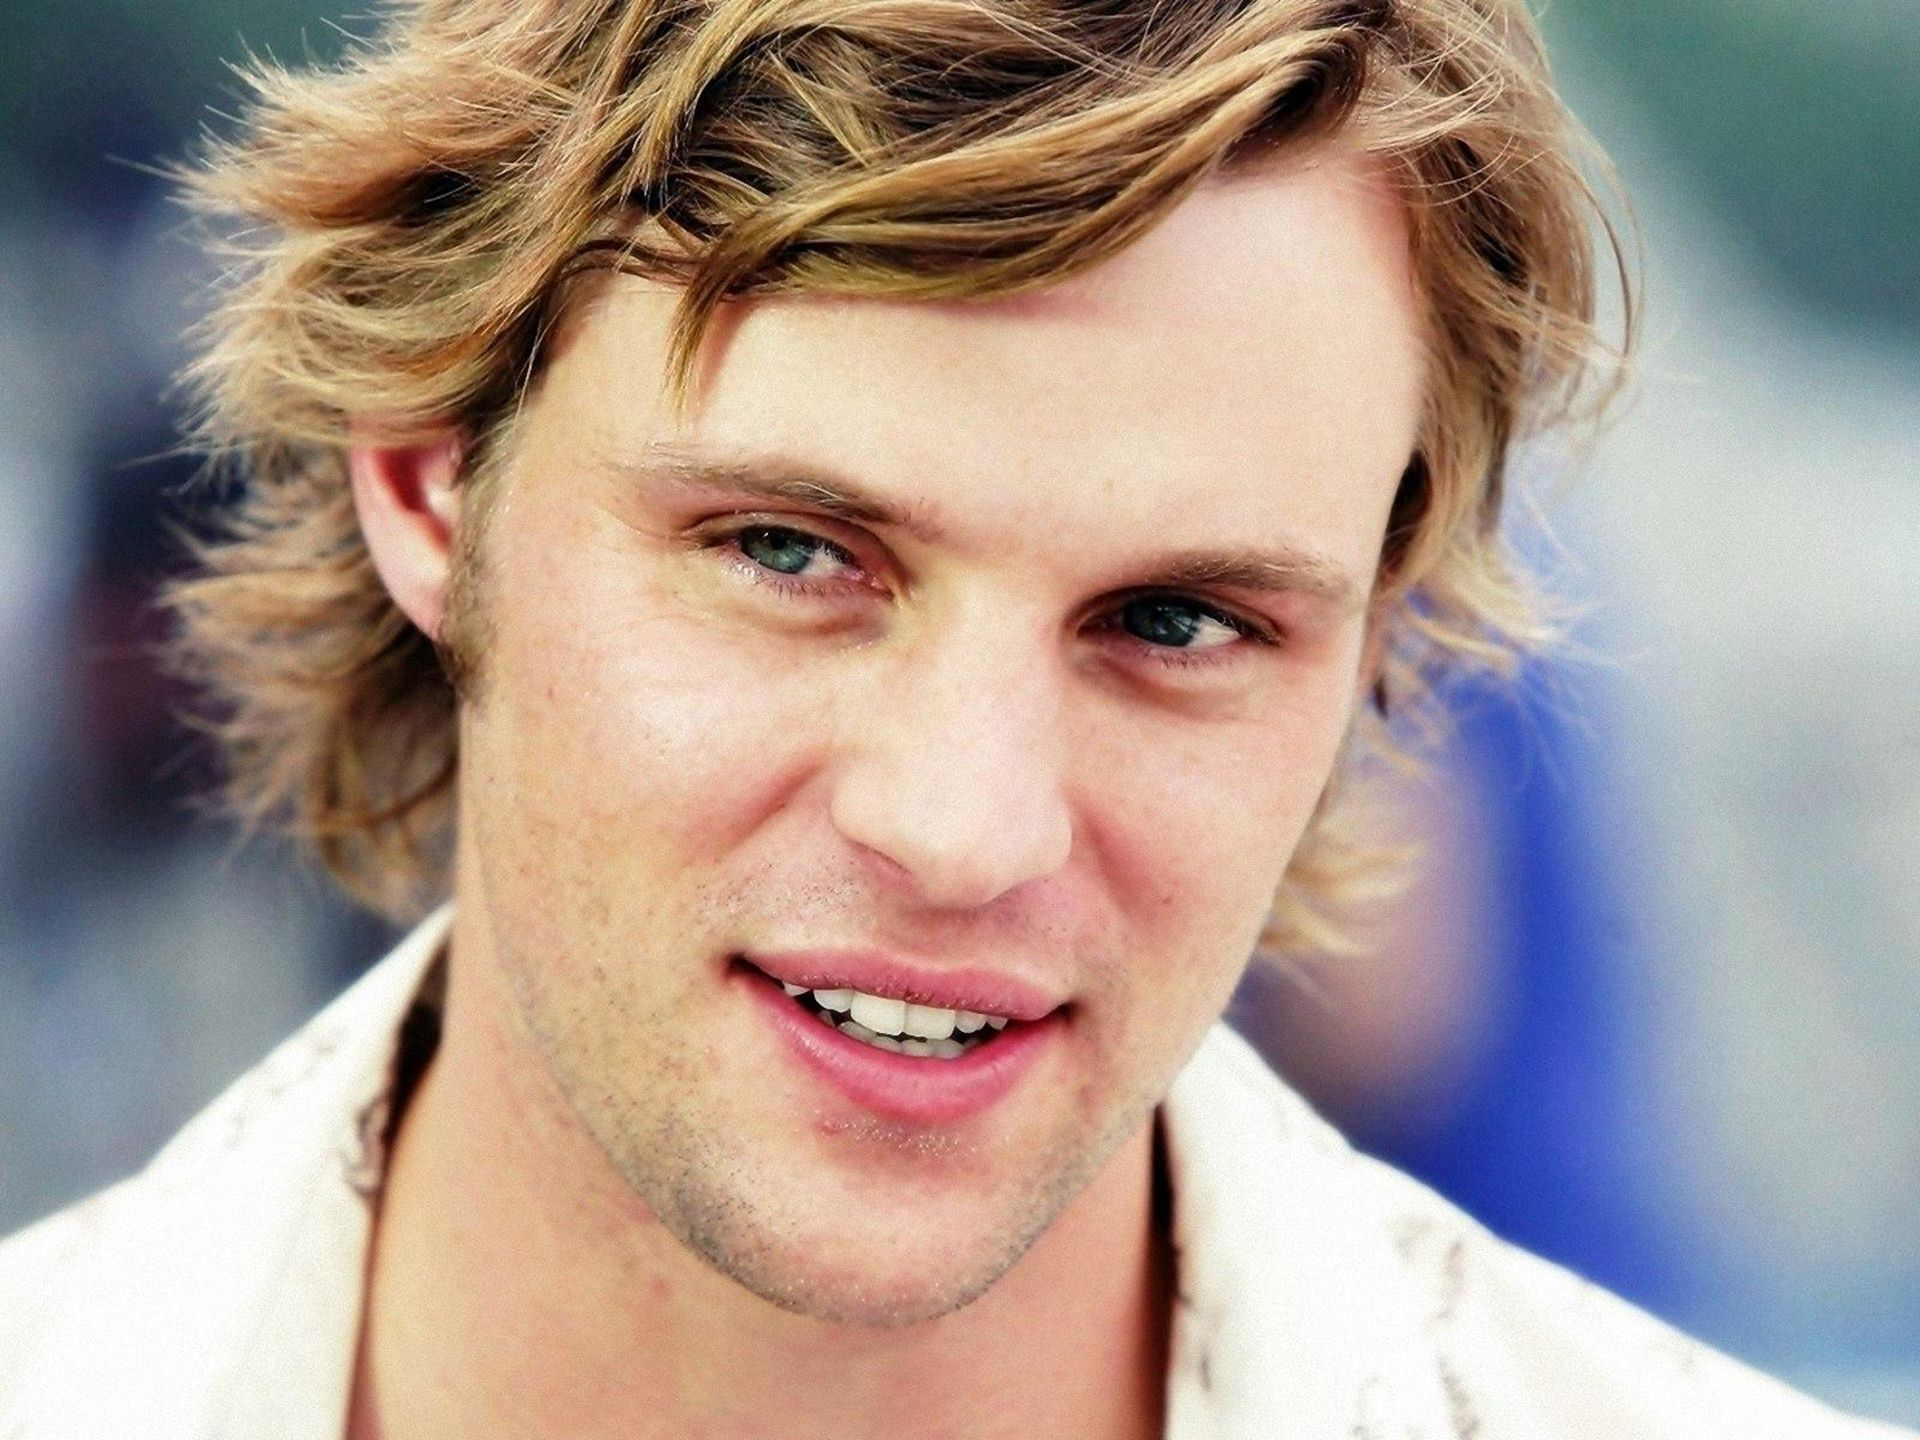 1920x1440 - Jesse Spencer Wallpapers 20